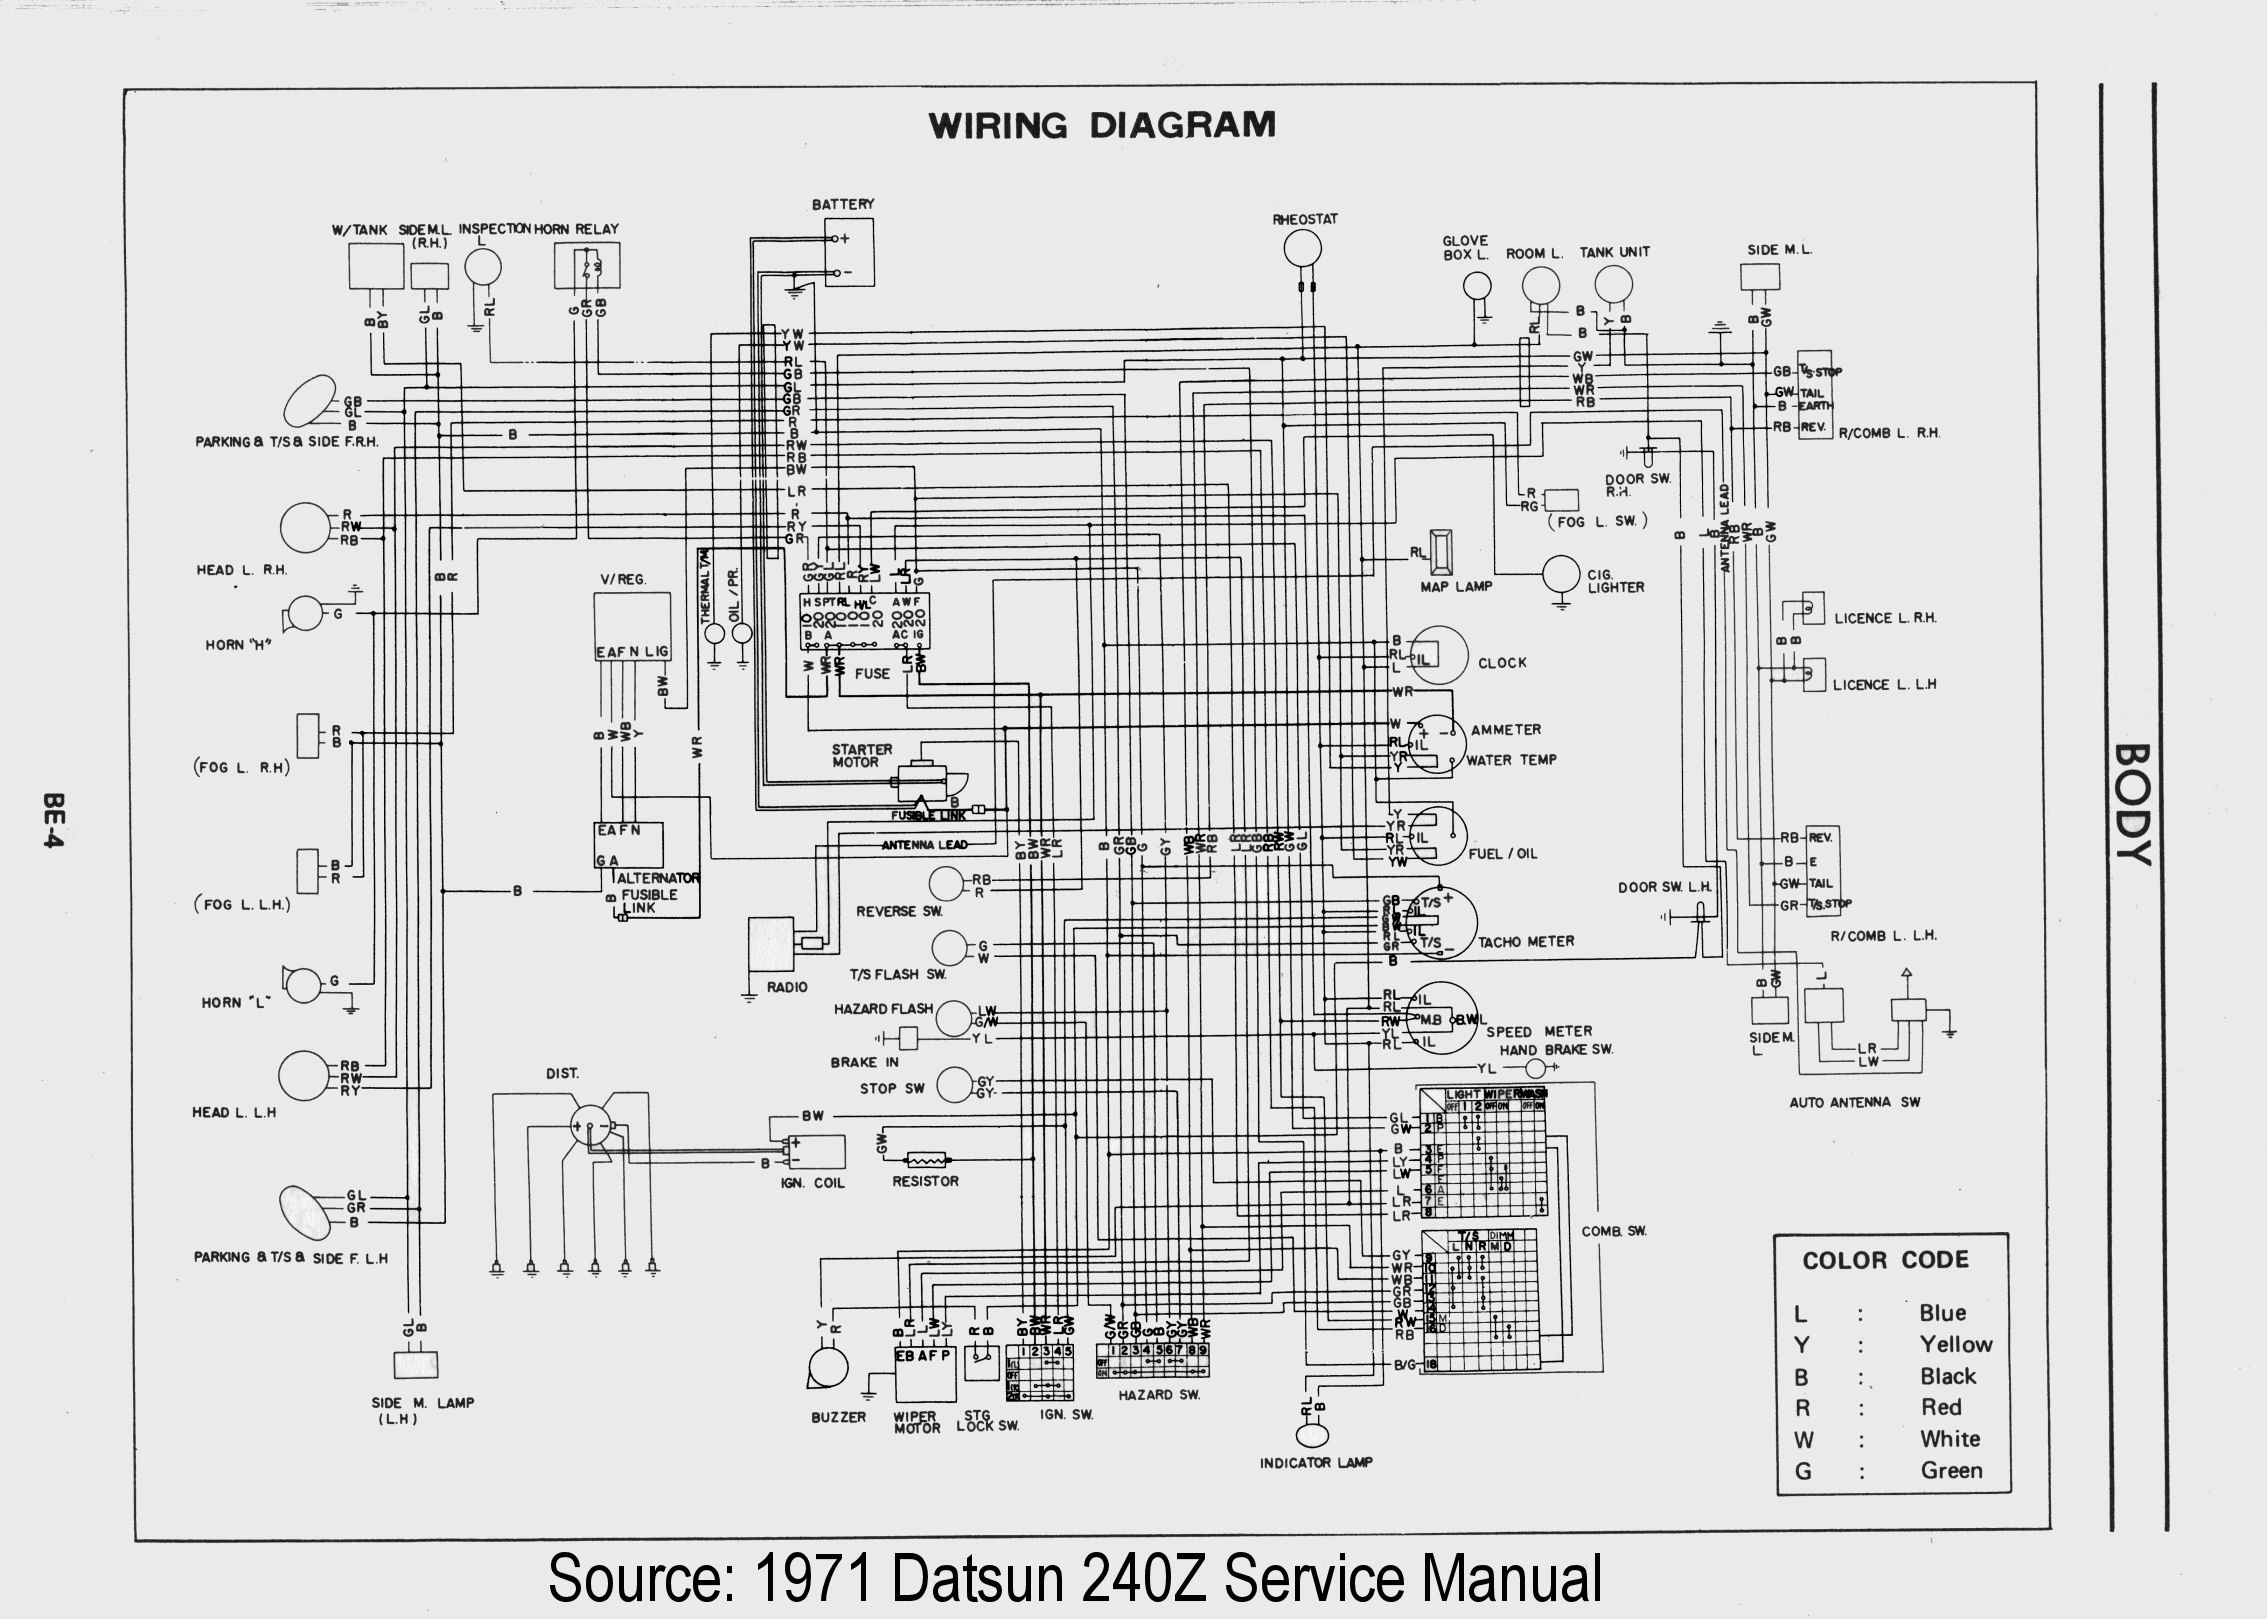 1990 nissan 300zx fuse panel diagram wiring schematic wiring rh 9 2  gastspiel gerhartz de 3 Wire Headlight Wiring Diagram gq patrol headlight  wiring diagram